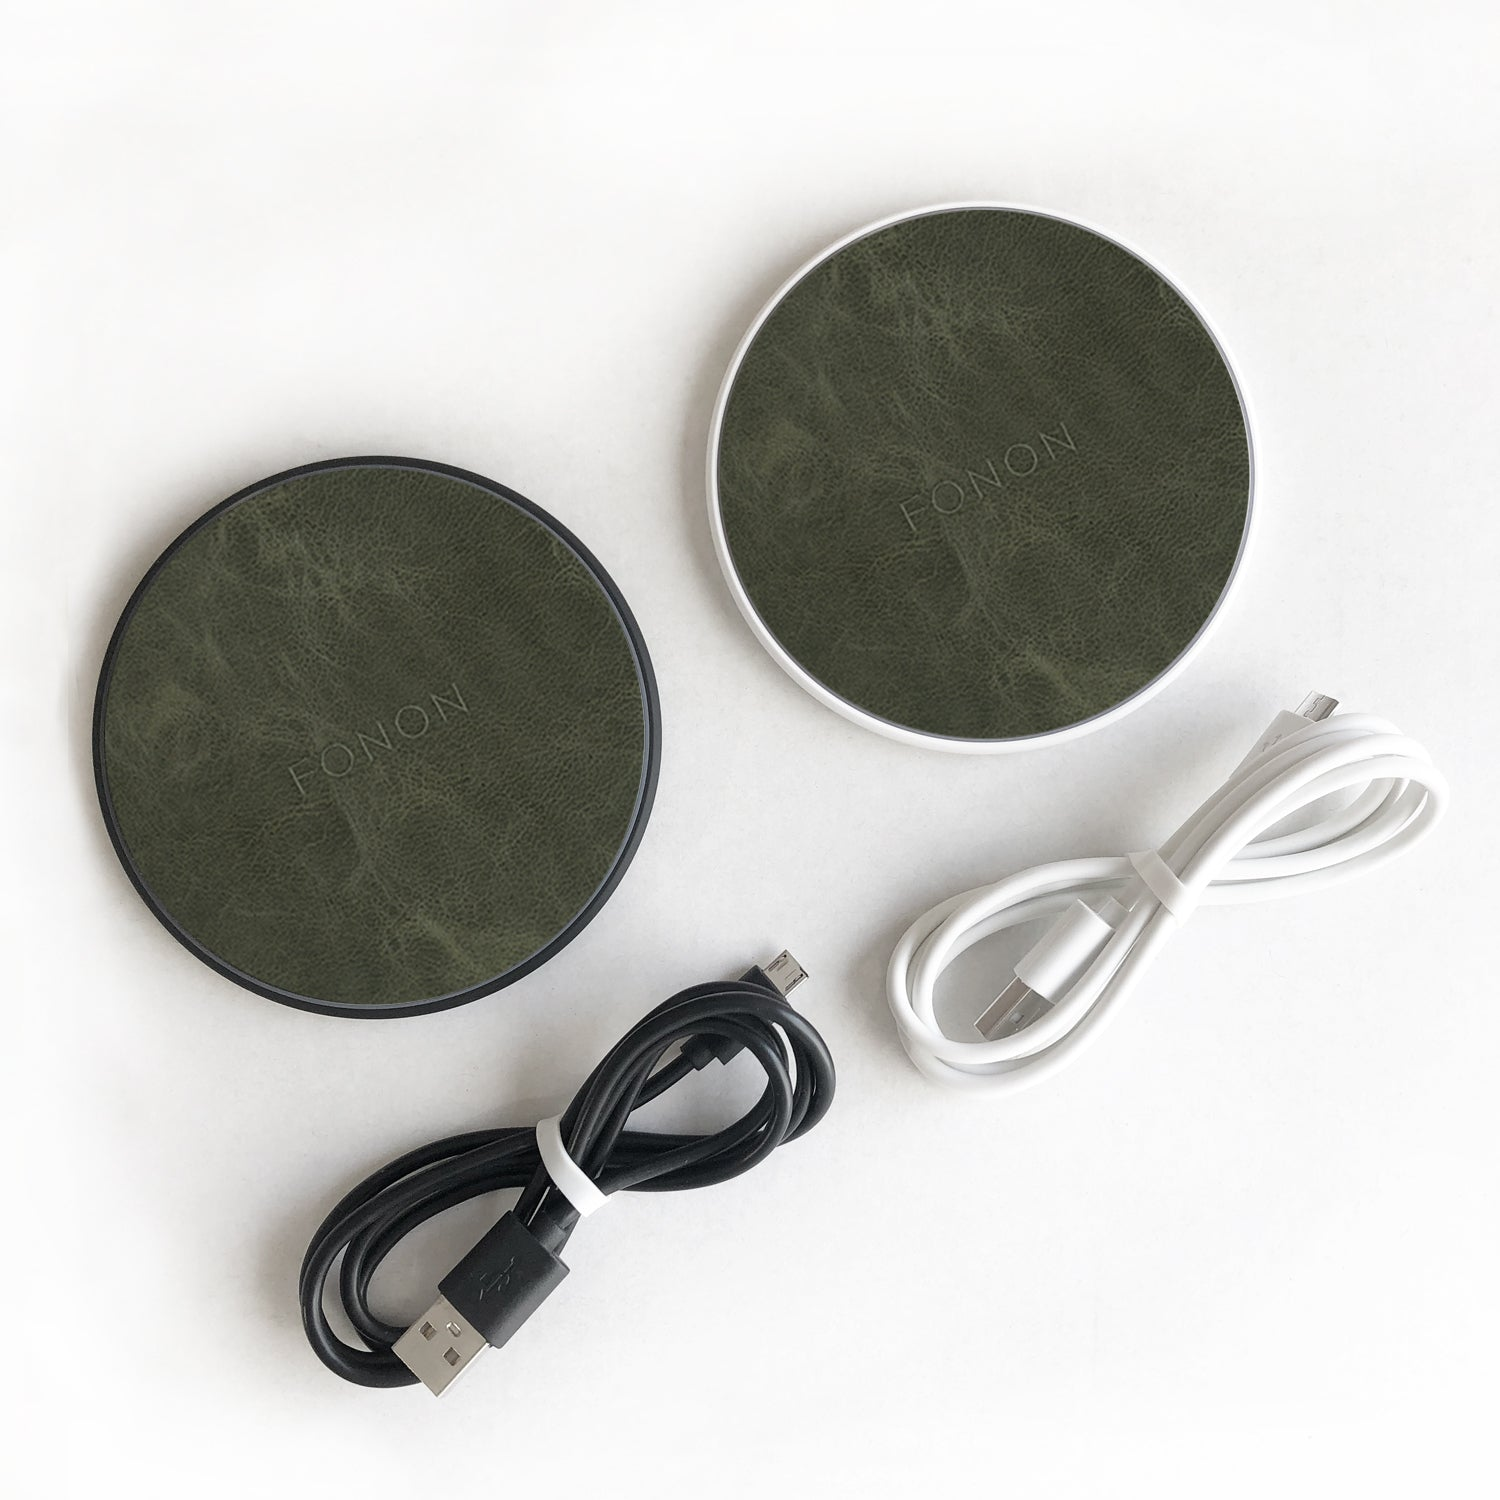 WIRELESS CHARGING BASE - LEATHER SERIES - Khaki